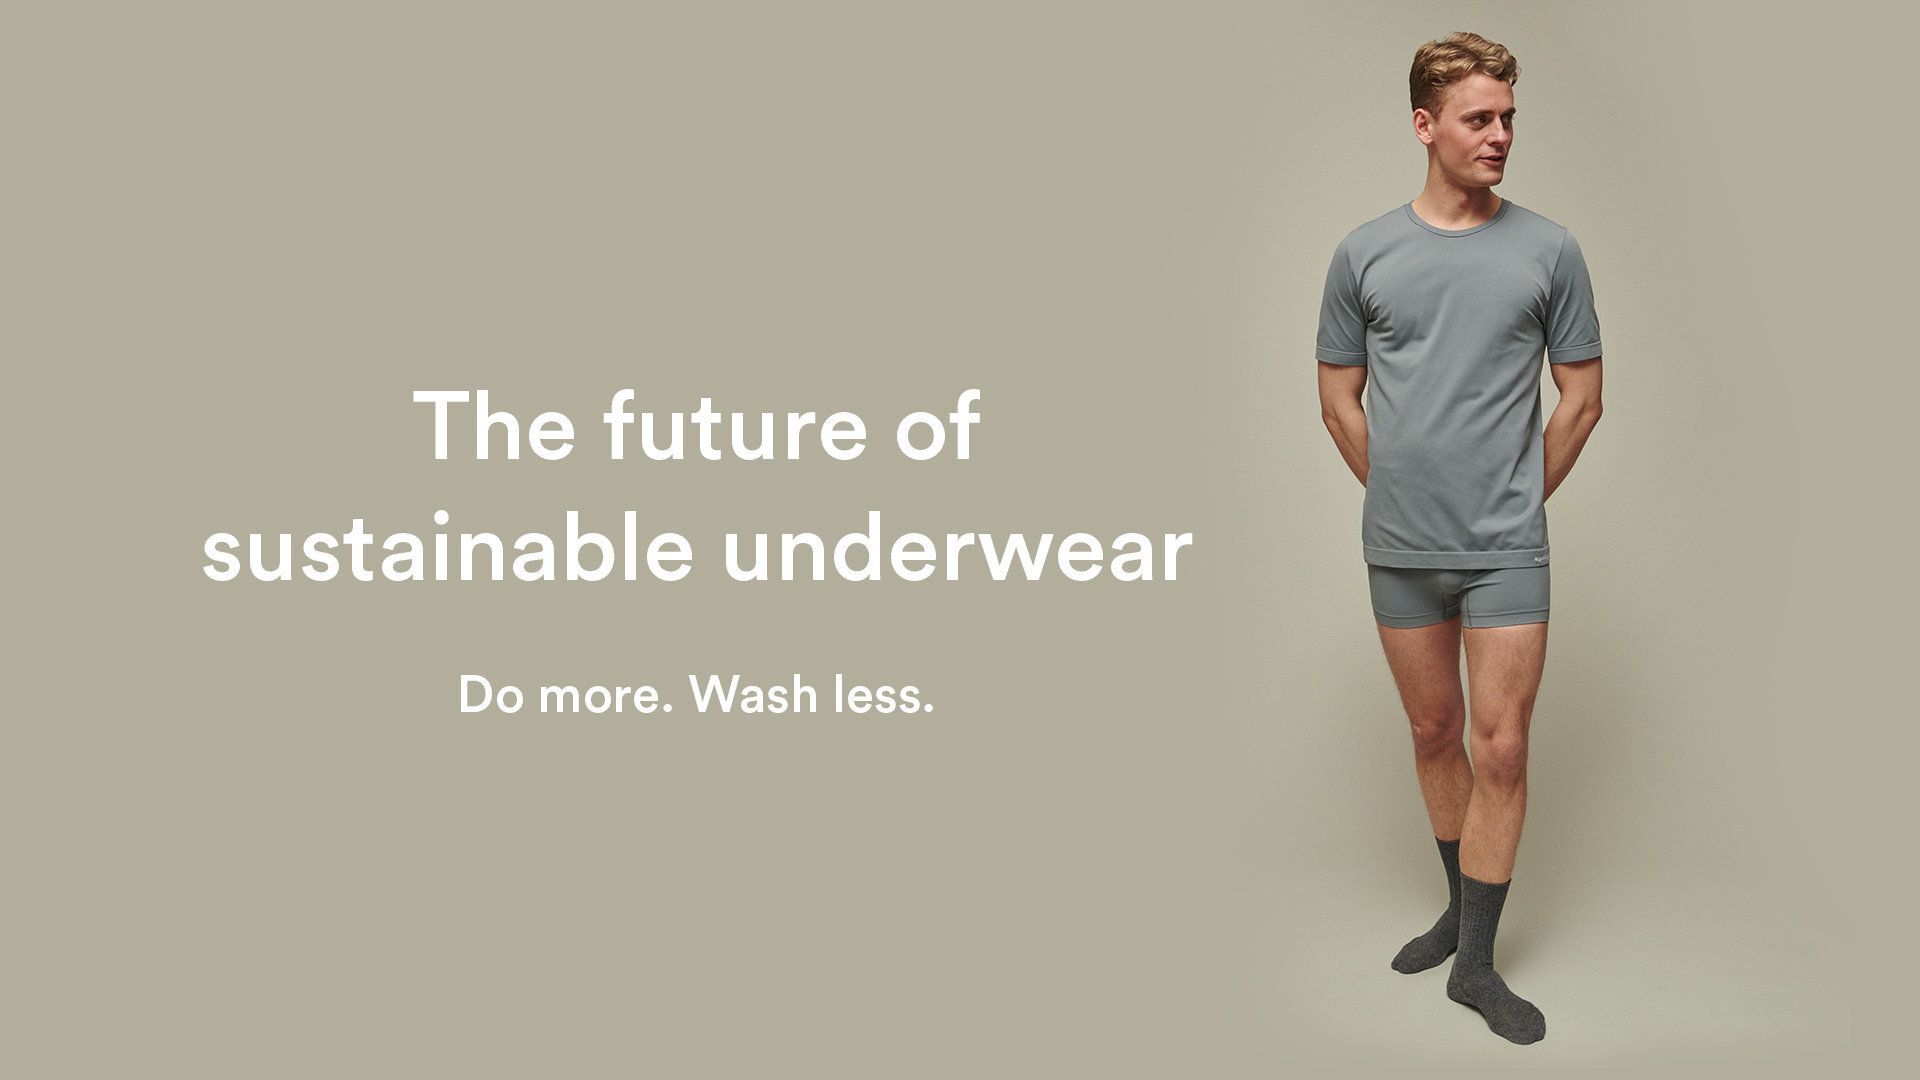 This Sustainable Underwear Doesn't Have To Be Washed 'For